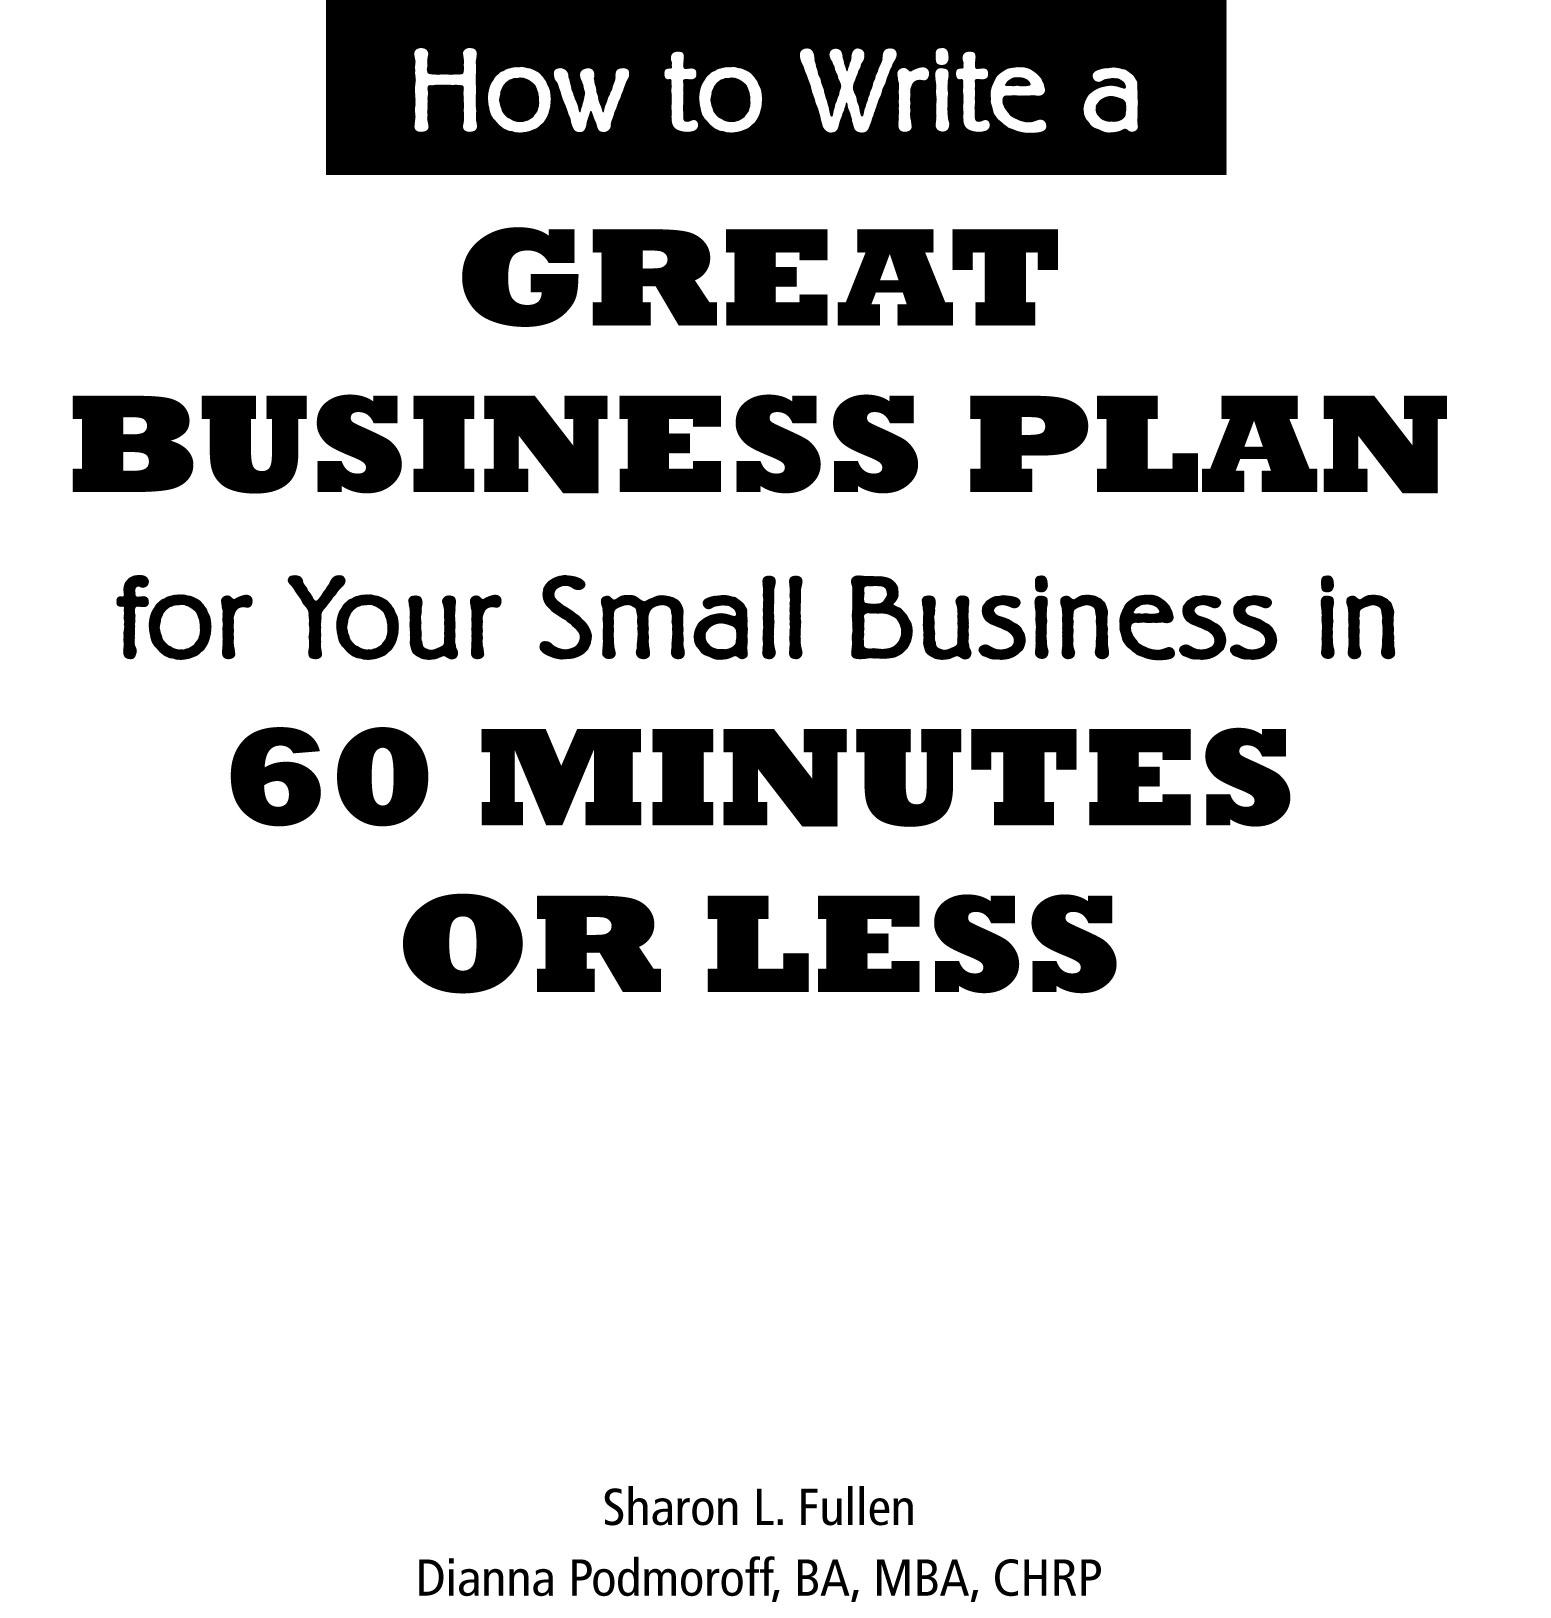 hiring a professional business plan writer Hiring a professional business plan writer our company can provide you with any kind of academic writing services you need: essays, research papers, dissertations.